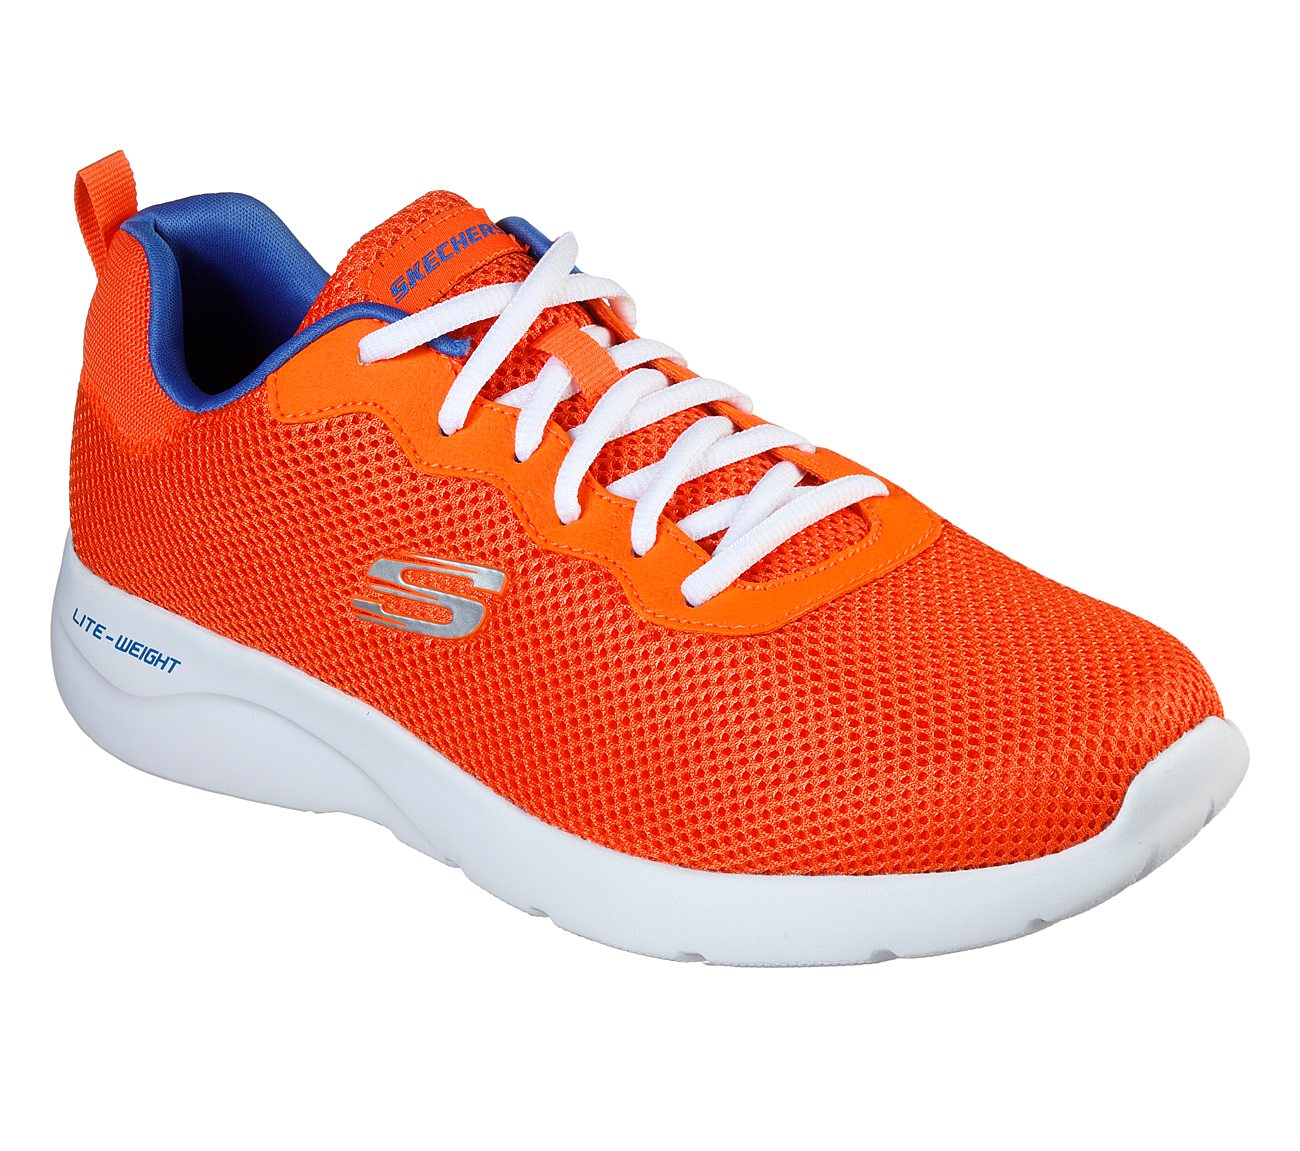 a3def903d806a skechers sport dynamight 2.0 Buy SKECHERS Dynamight 2.0 - Rayhill Sport  Shoes only $55.00